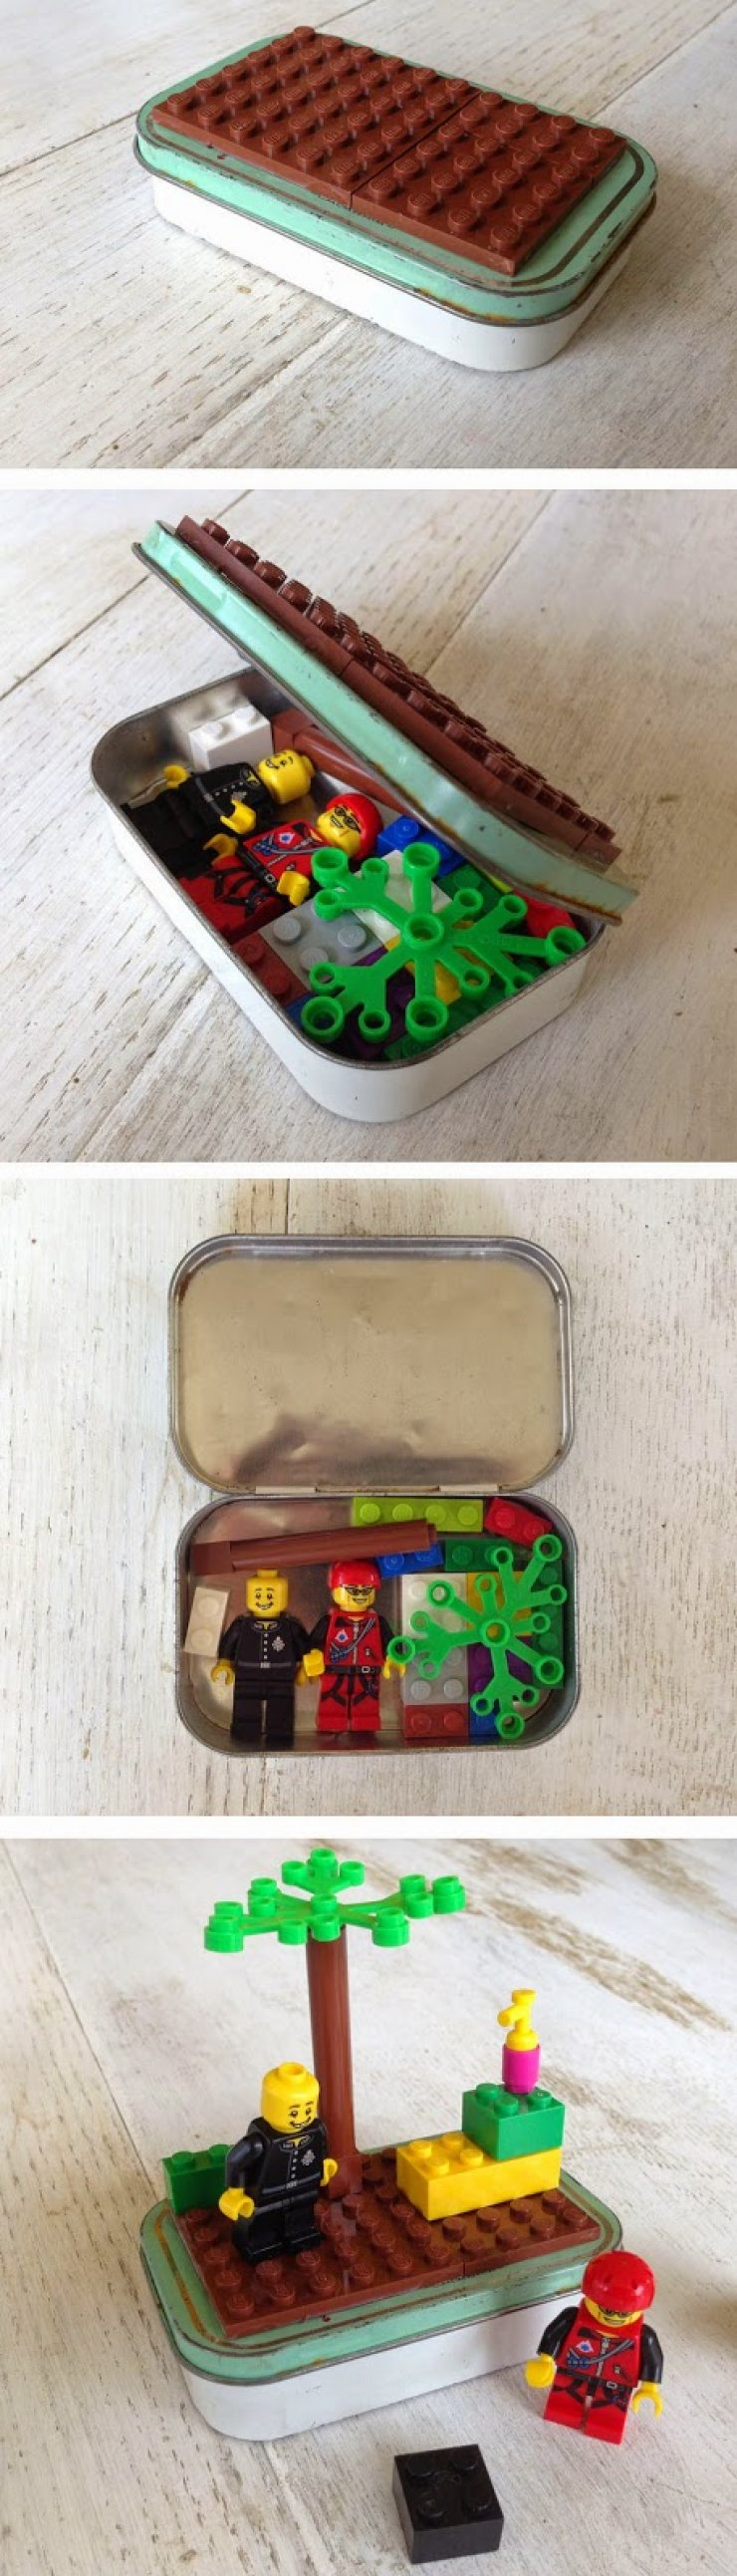 Lego portable play set in a mint tin